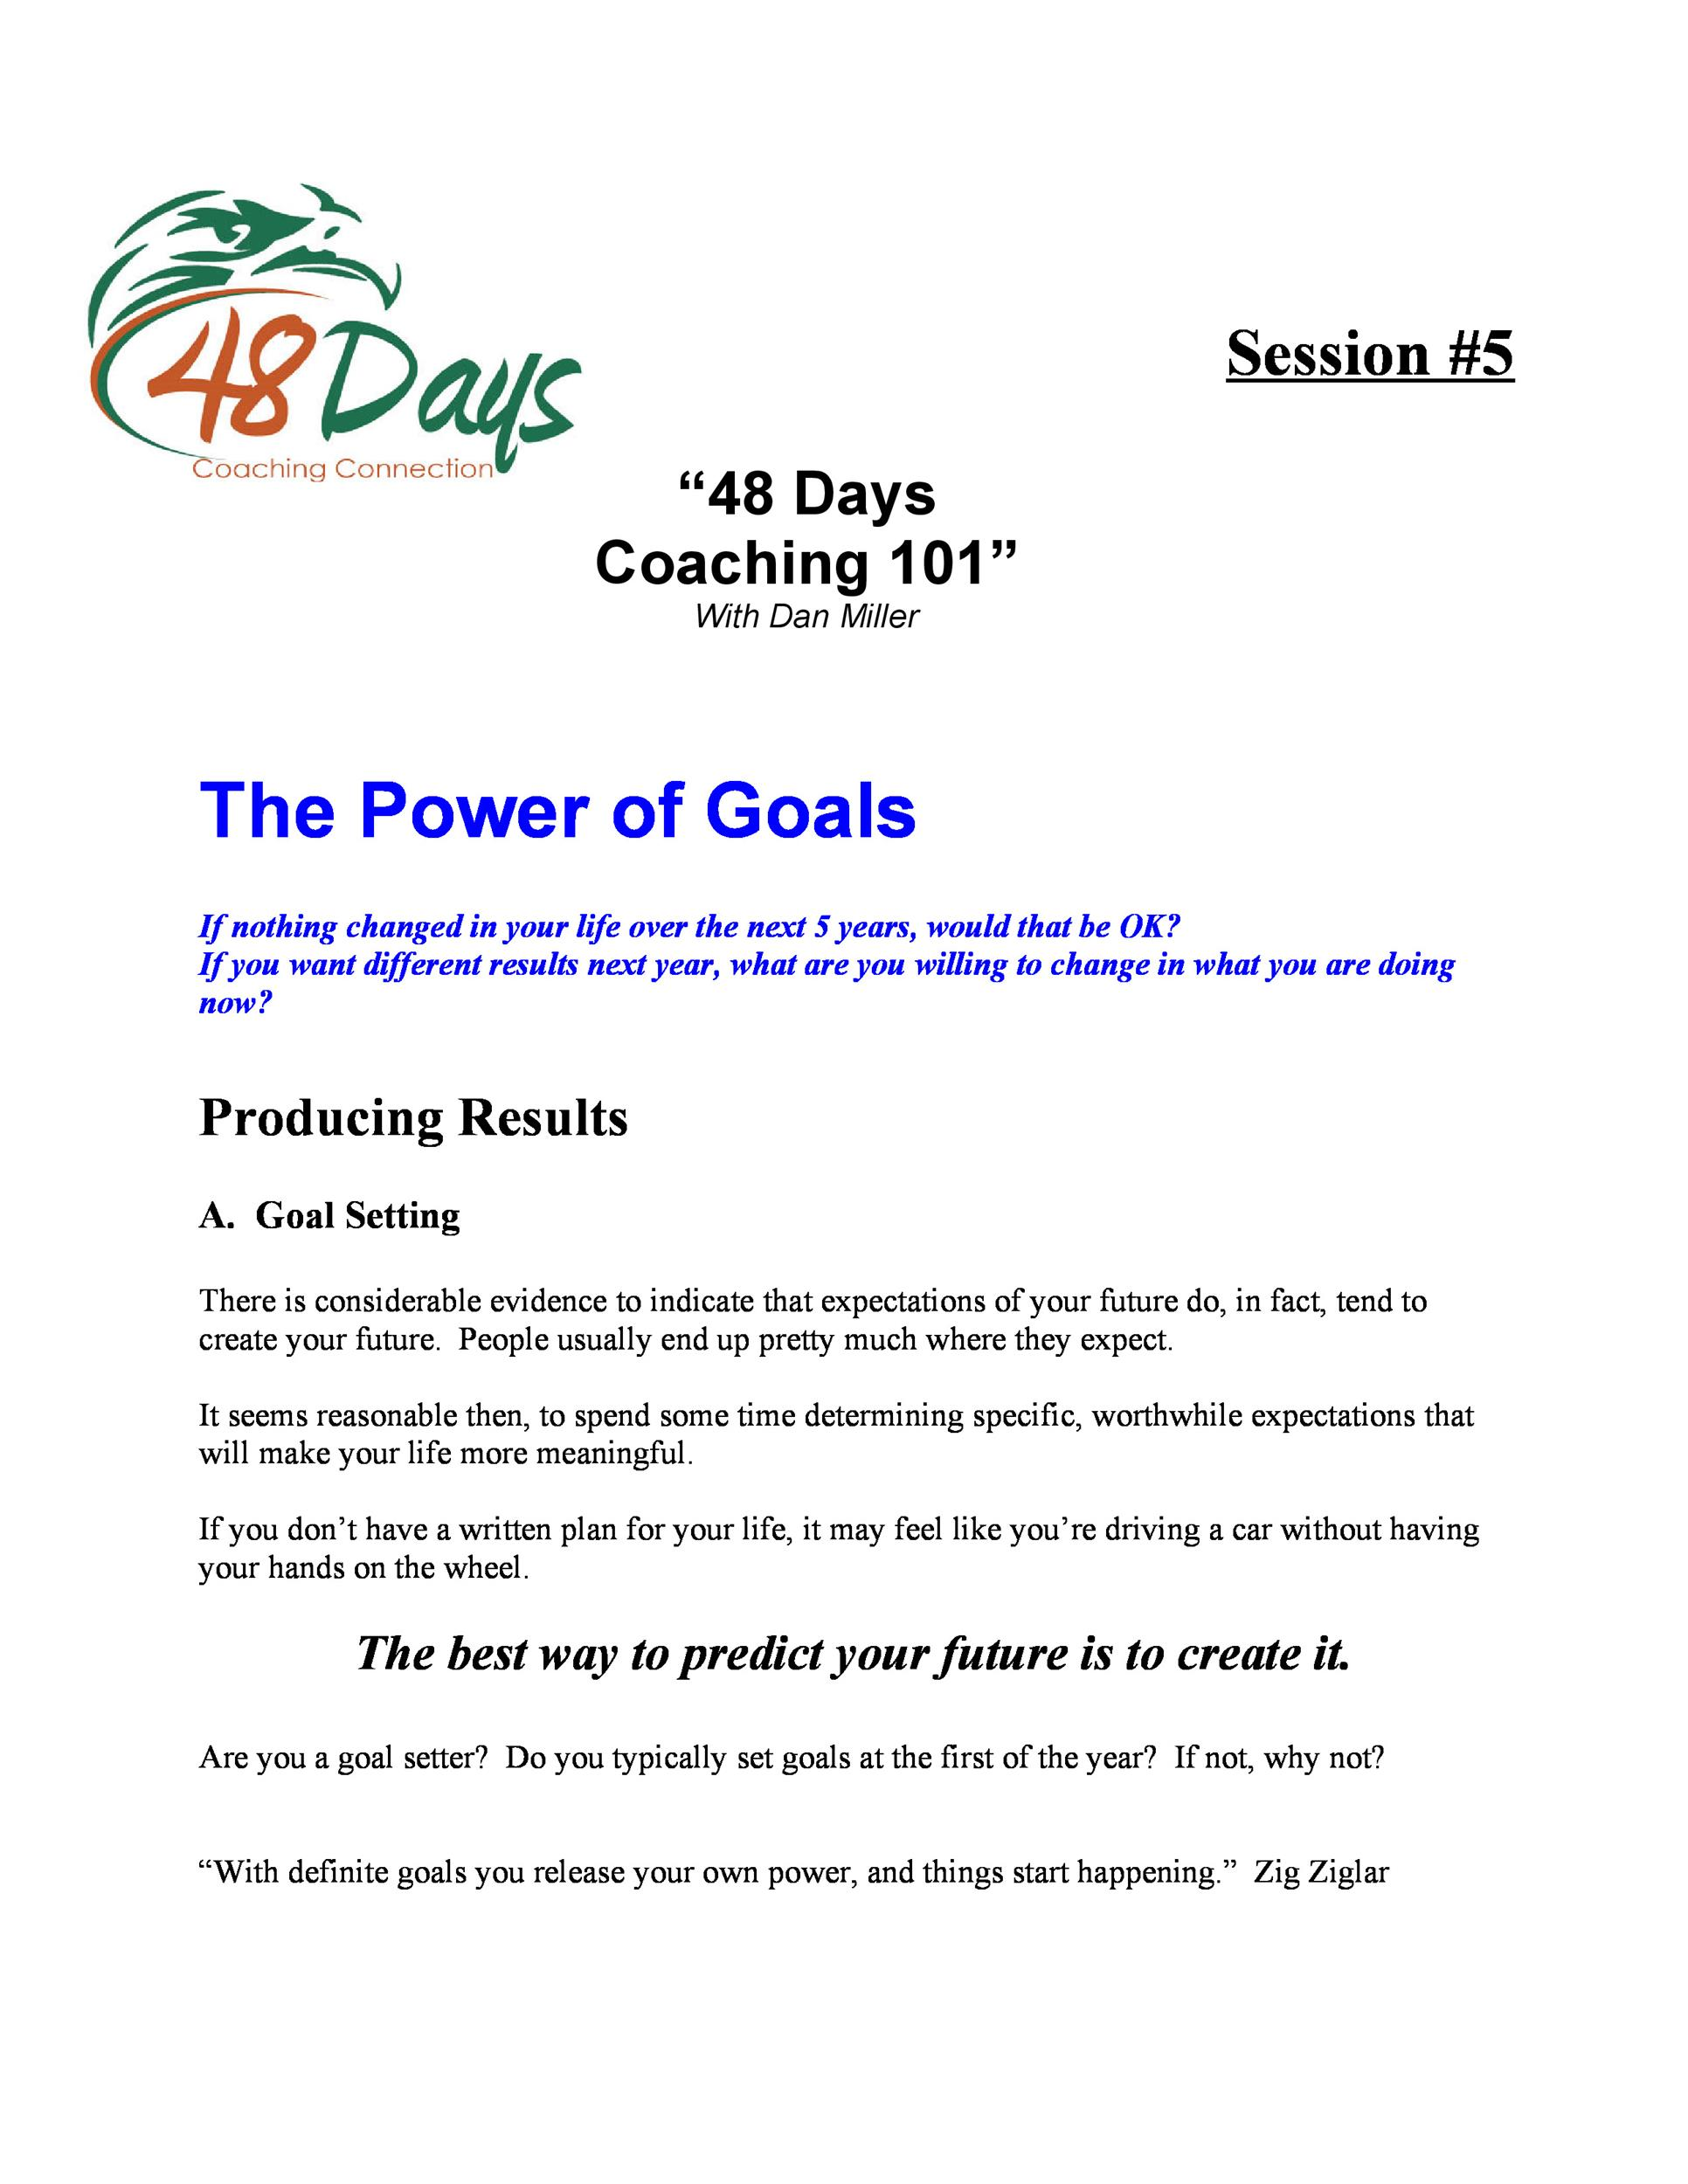 Smart Goal Worksheet Template Word